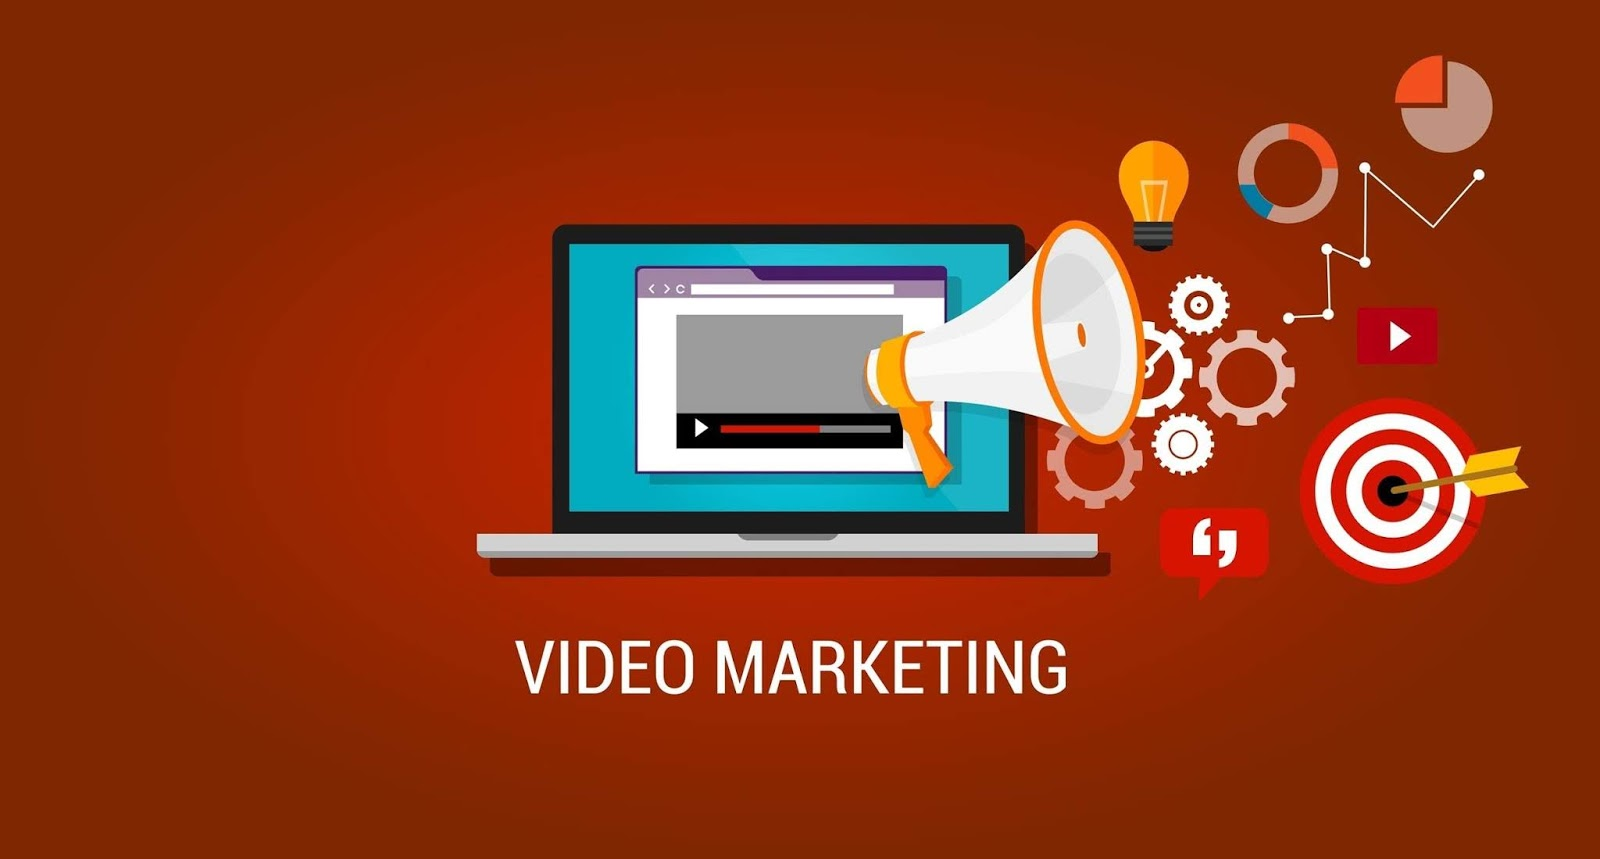 SEO Consulting Services, News & Blog - SEO Basics: 9 Marketing Ideas for Video Production Companies